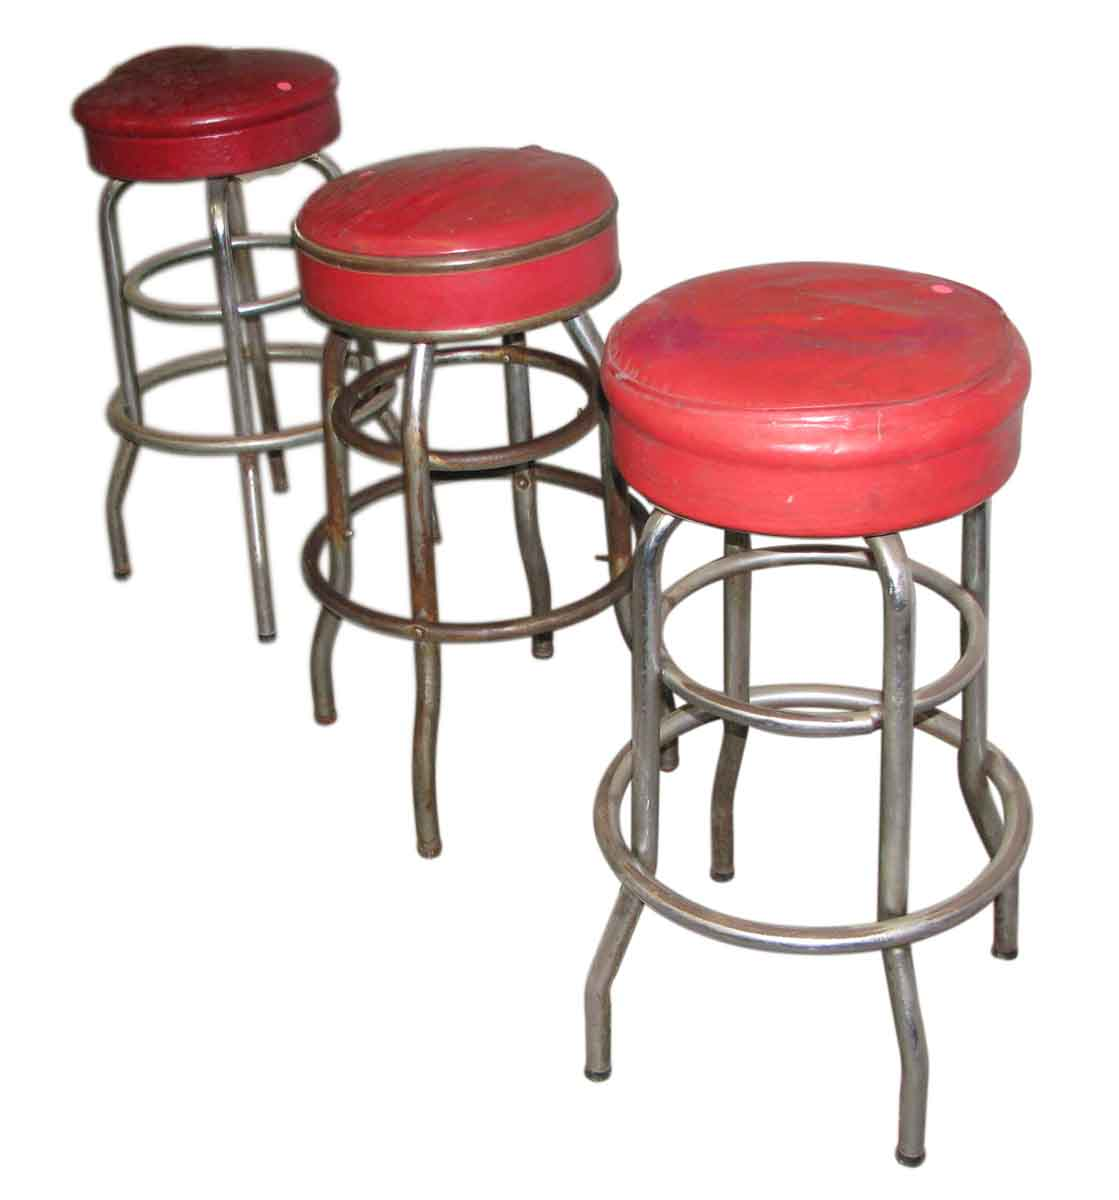 Vintage Metal Bar Stool Olde Good Things : L215425 06 from ogtstore.com size 1119 x 1200 jpeg 35kB